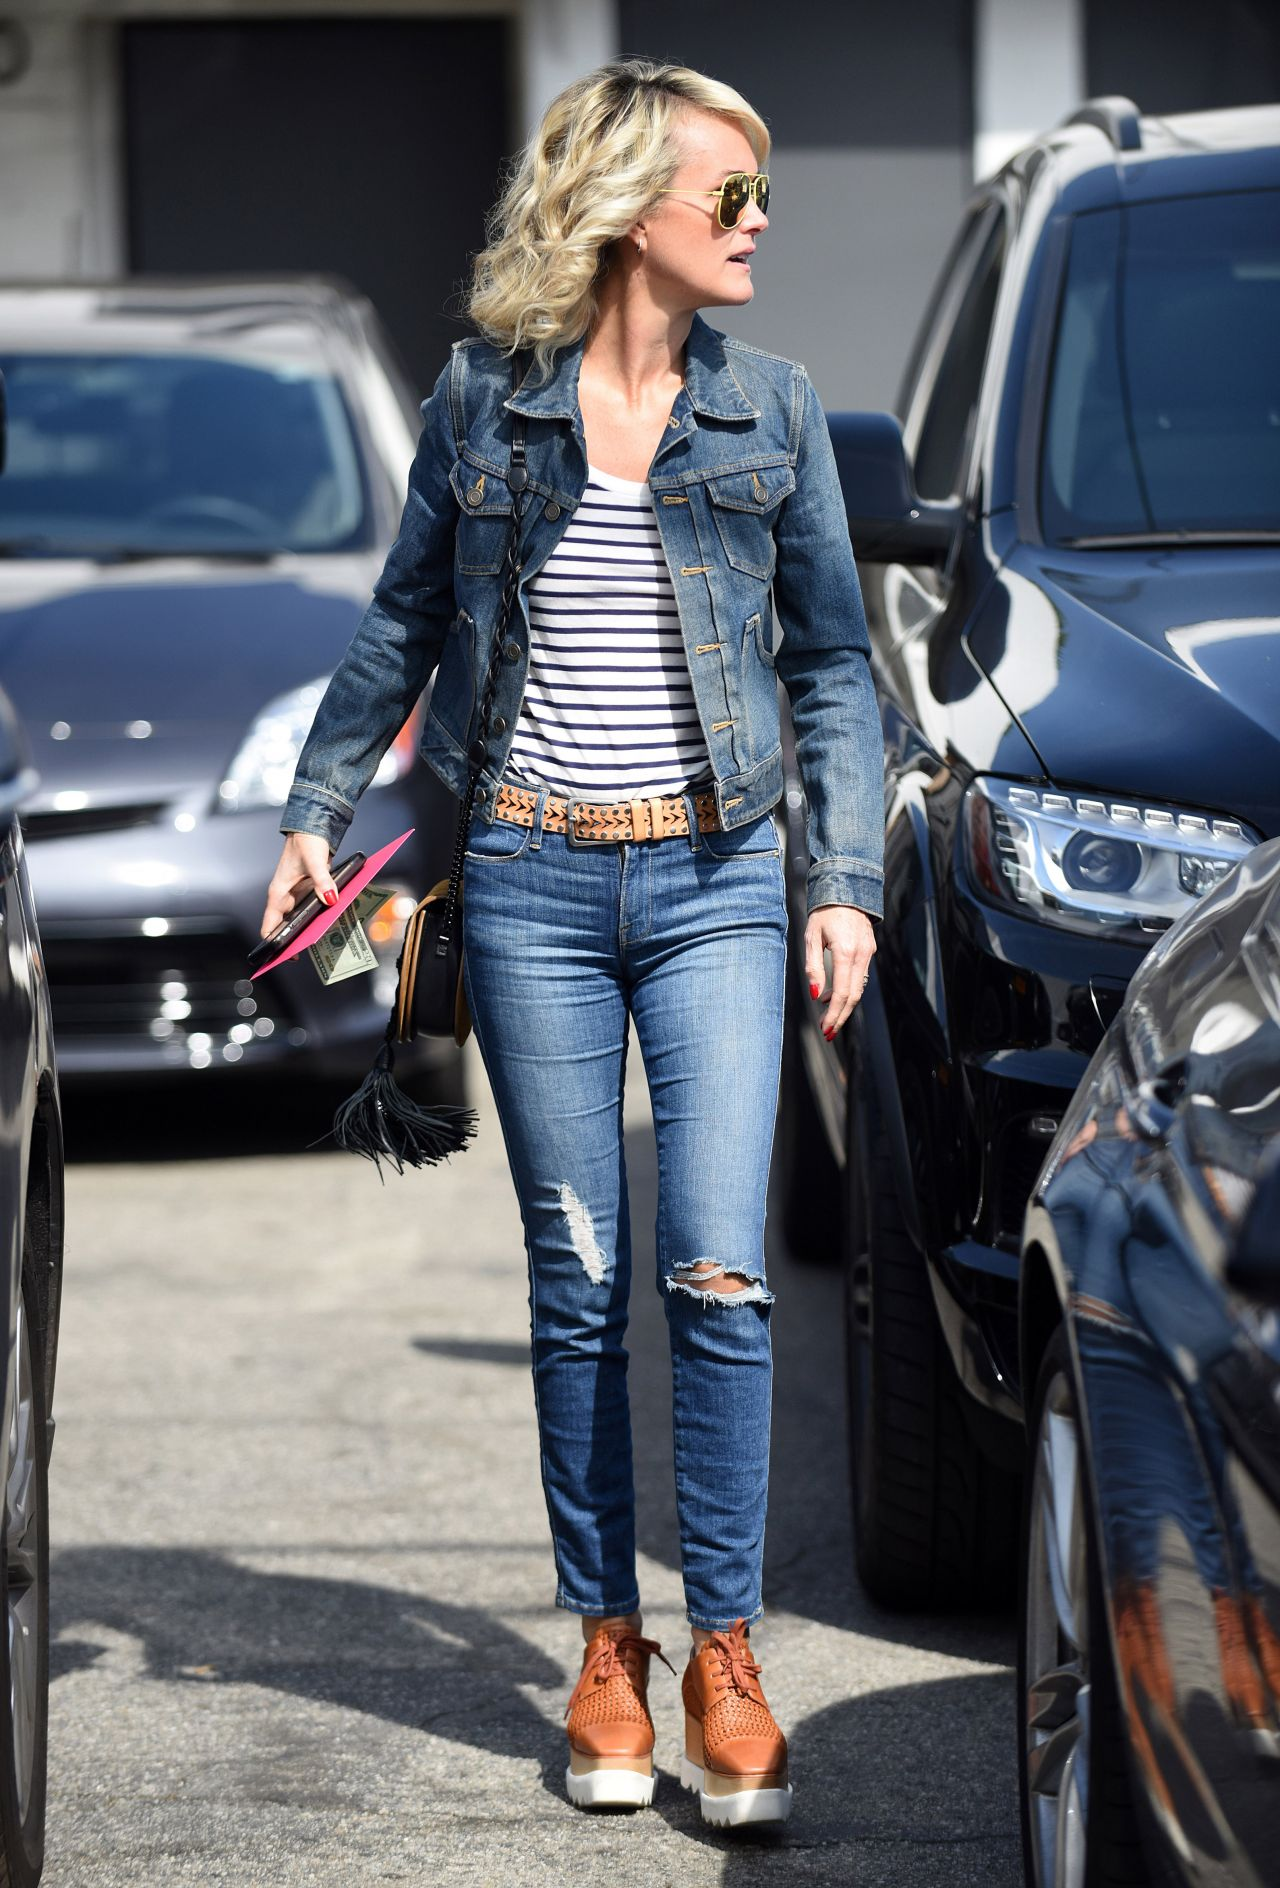 Laeticia Hallyday Looking Trendy Out In Beverly Hills